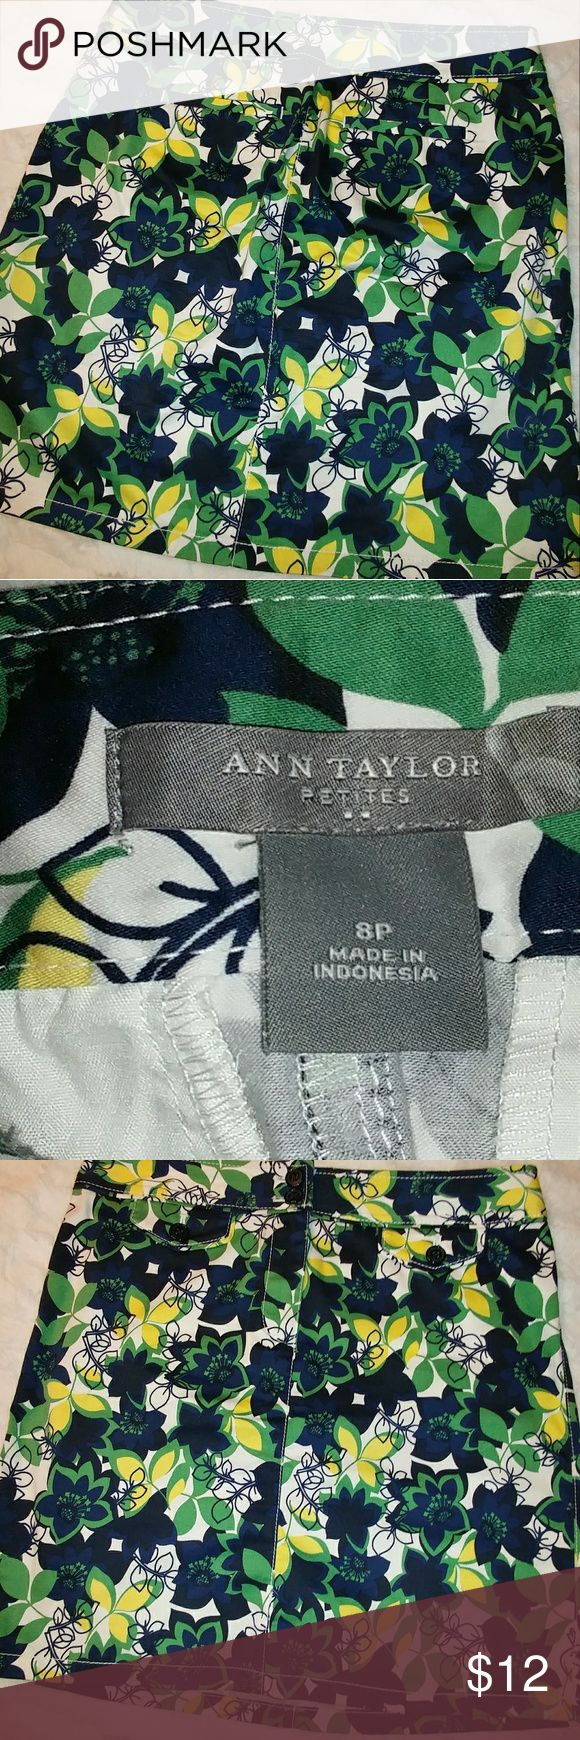 Anne Taylor 8 Petite skirt summer Multicolor Anne Taylor skirt 98% cotton, 2% spandex in navy and green Ann Taylor Skirts Mini